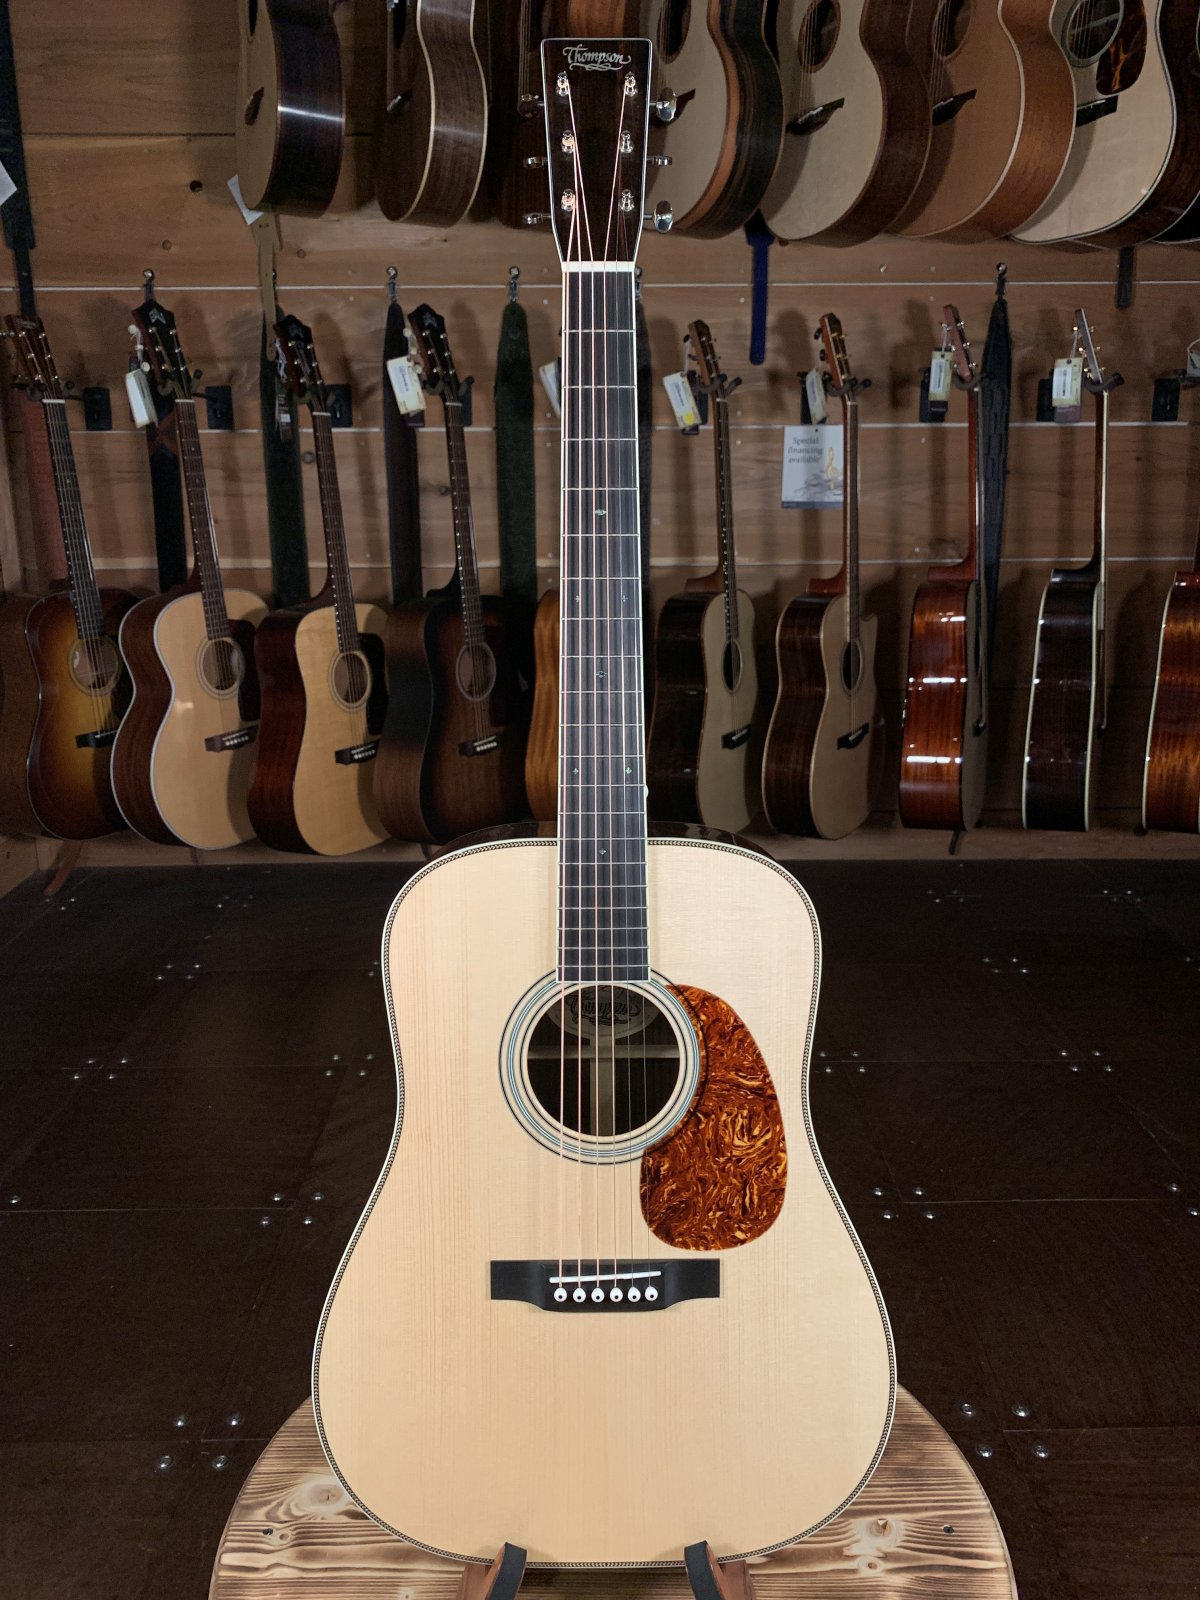 Preston Thompson D-EIA East Indian Rosewood Custom w/Bound Headstock and Fingerboard #1658 Acoustic Guitar